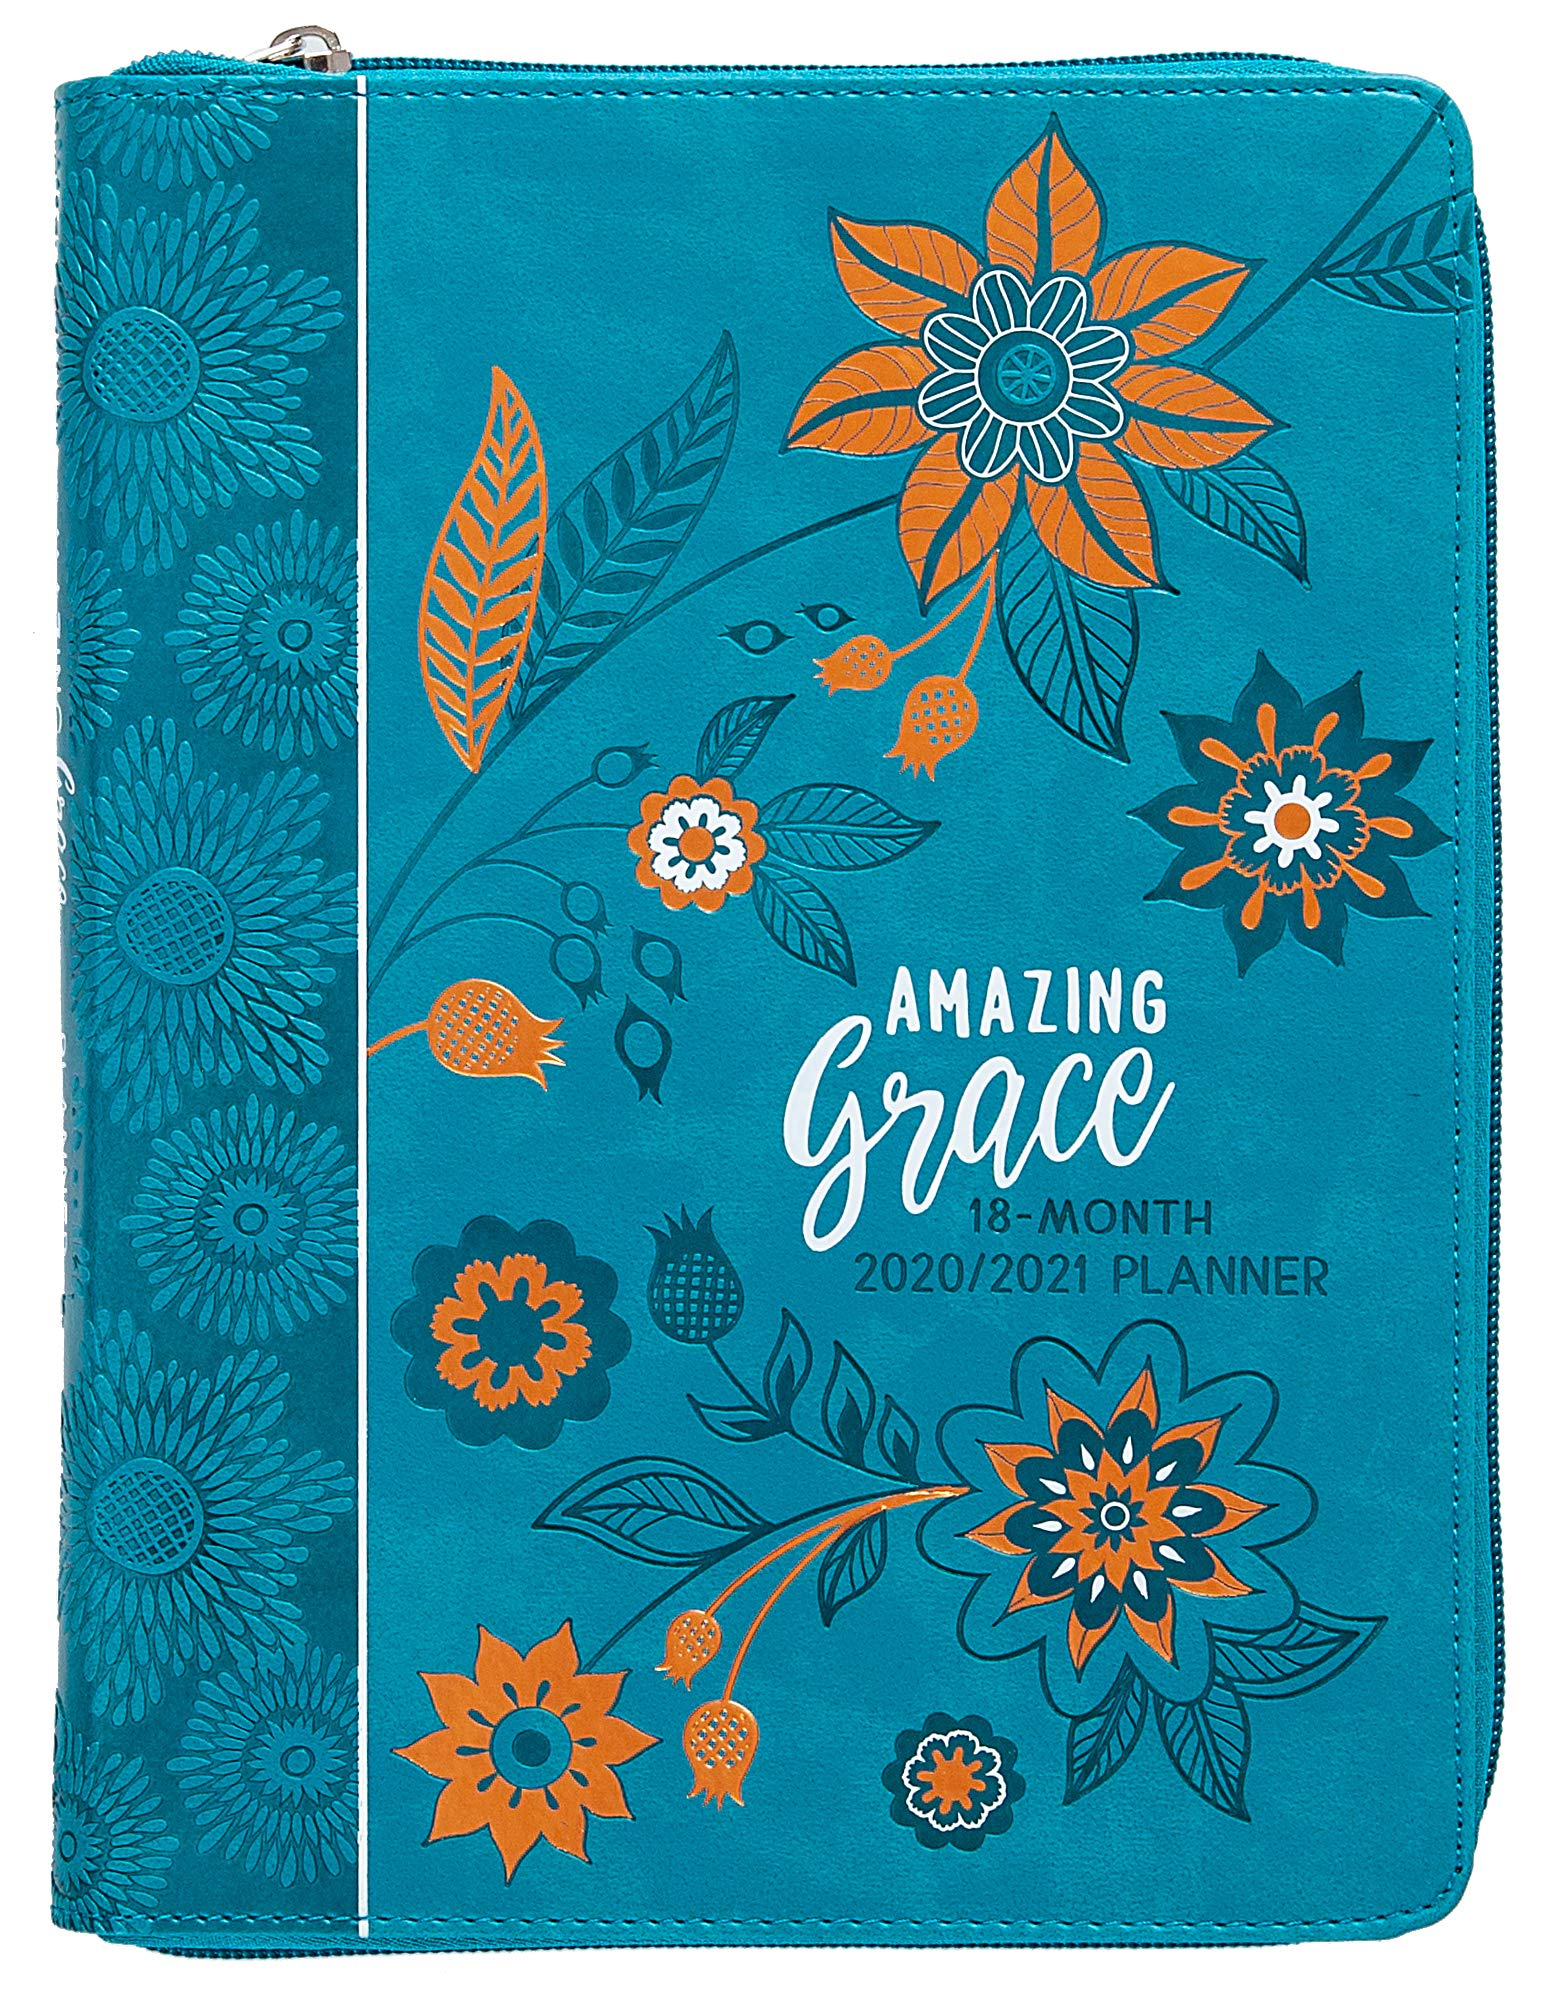 Download Amazing Grace 2021 Planner: 18 Month Ziparound Planner 